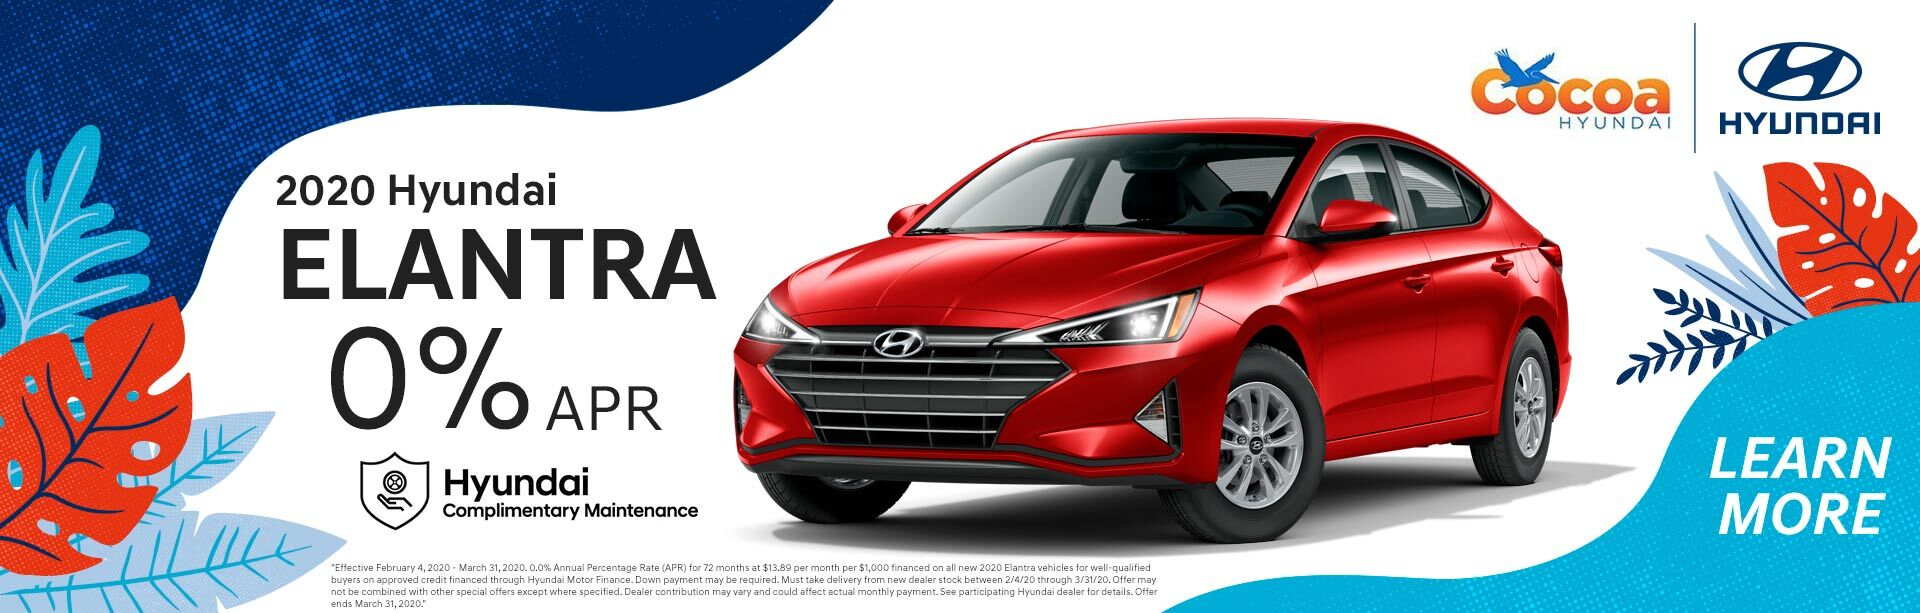 2020 Hyundai Elantra All:  Expires 3/31/2020.